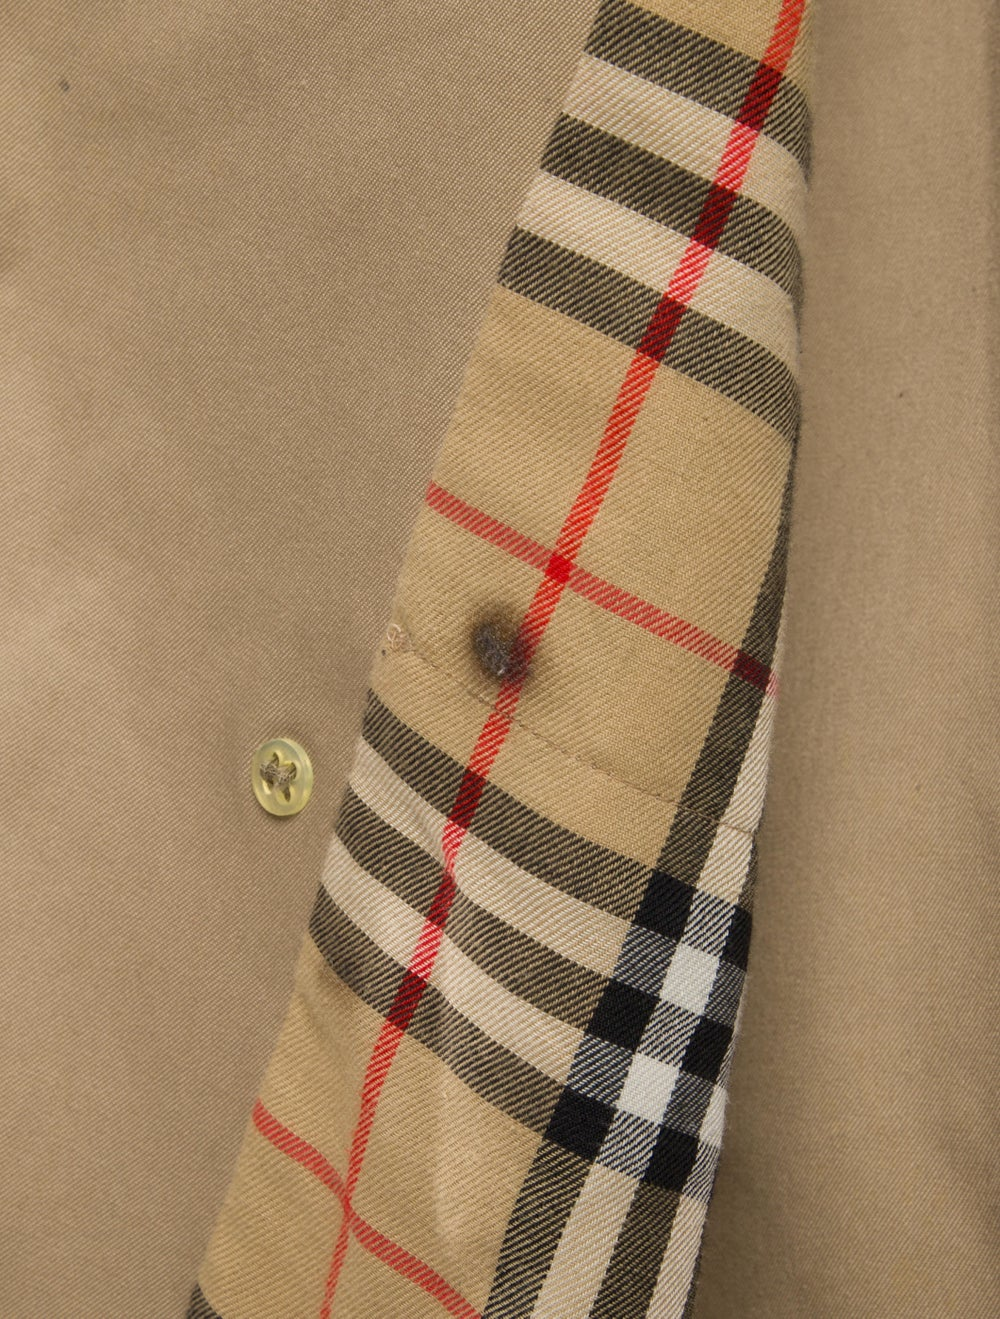 Burberry Double-Breasted Trench Coat Beige - image 4